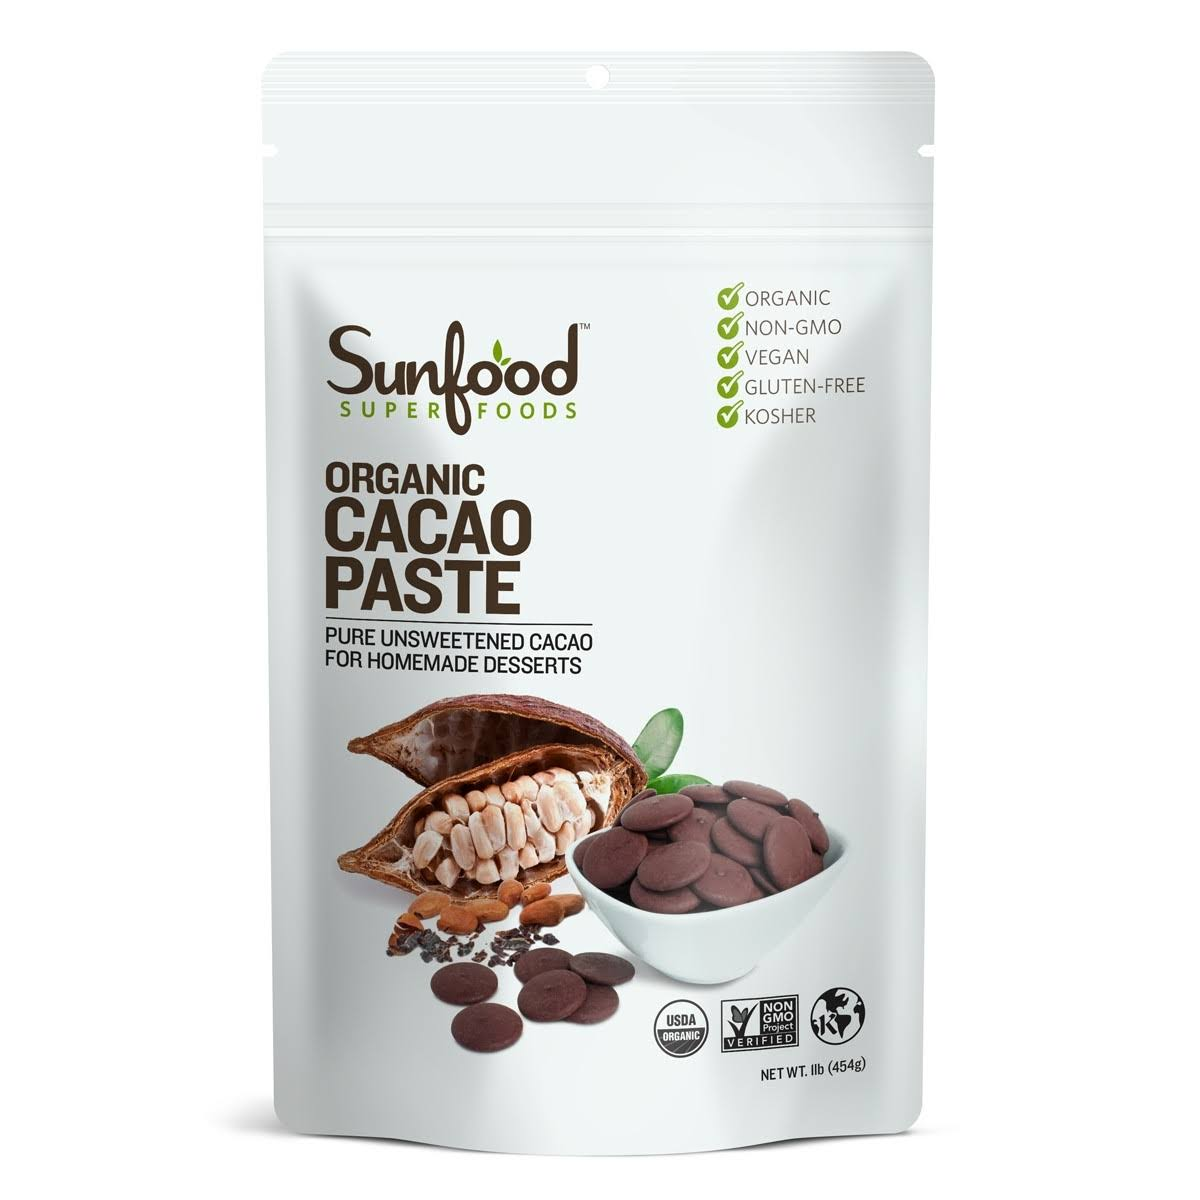 Sunfood Organic Cacao Paste - 1lb